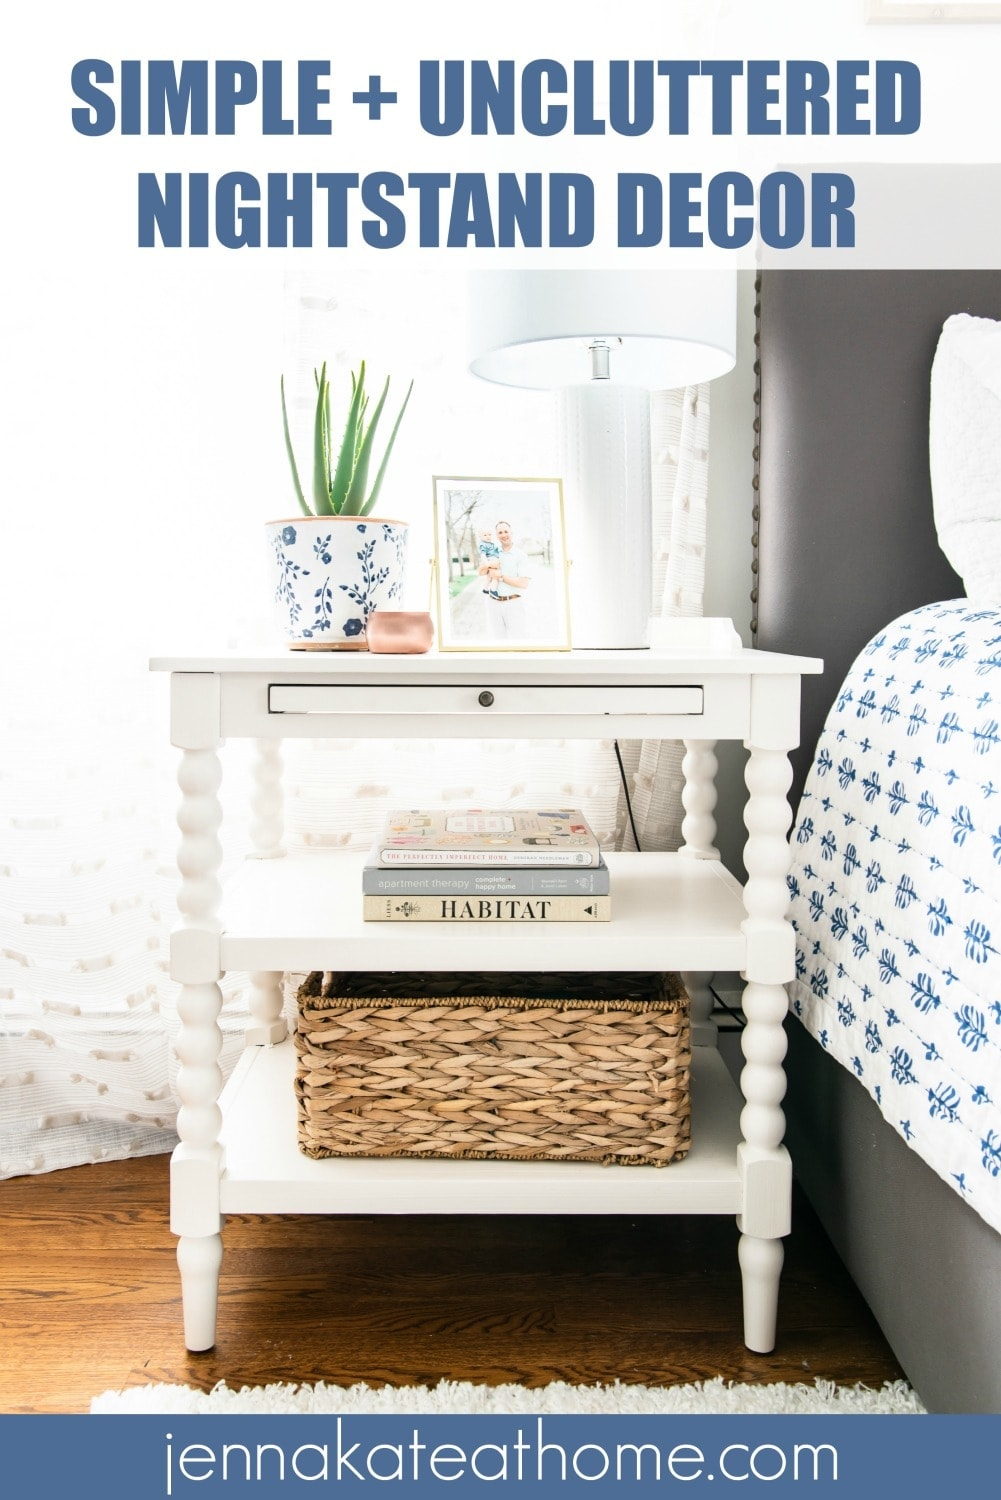 Simple and uncluttered nightstand decor ideas for your bedroom